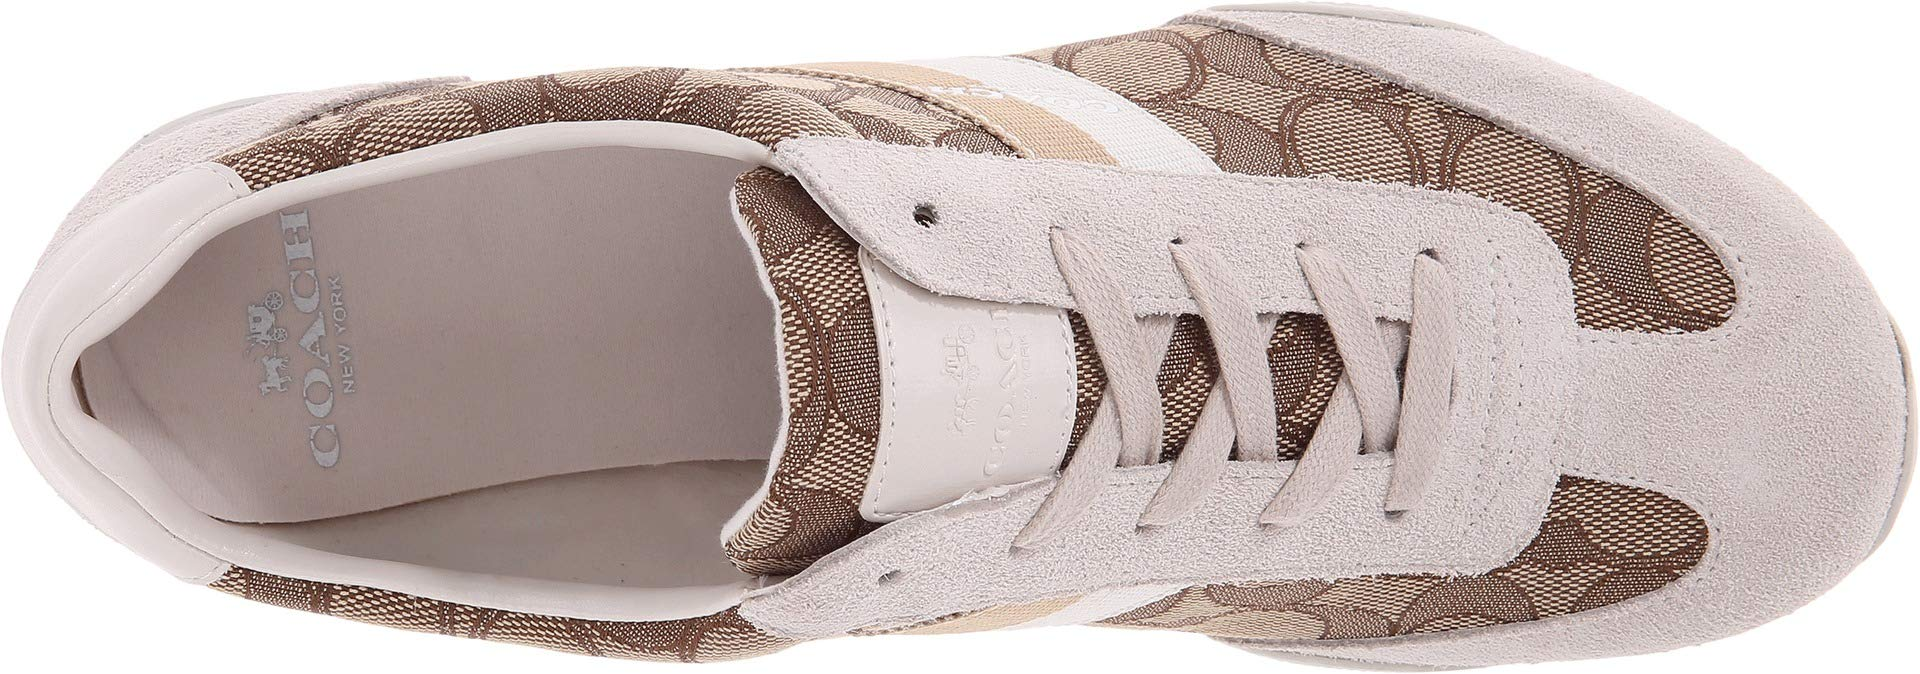 Coach Womens Kelson Low Top Lace Up Fashion Sneakers